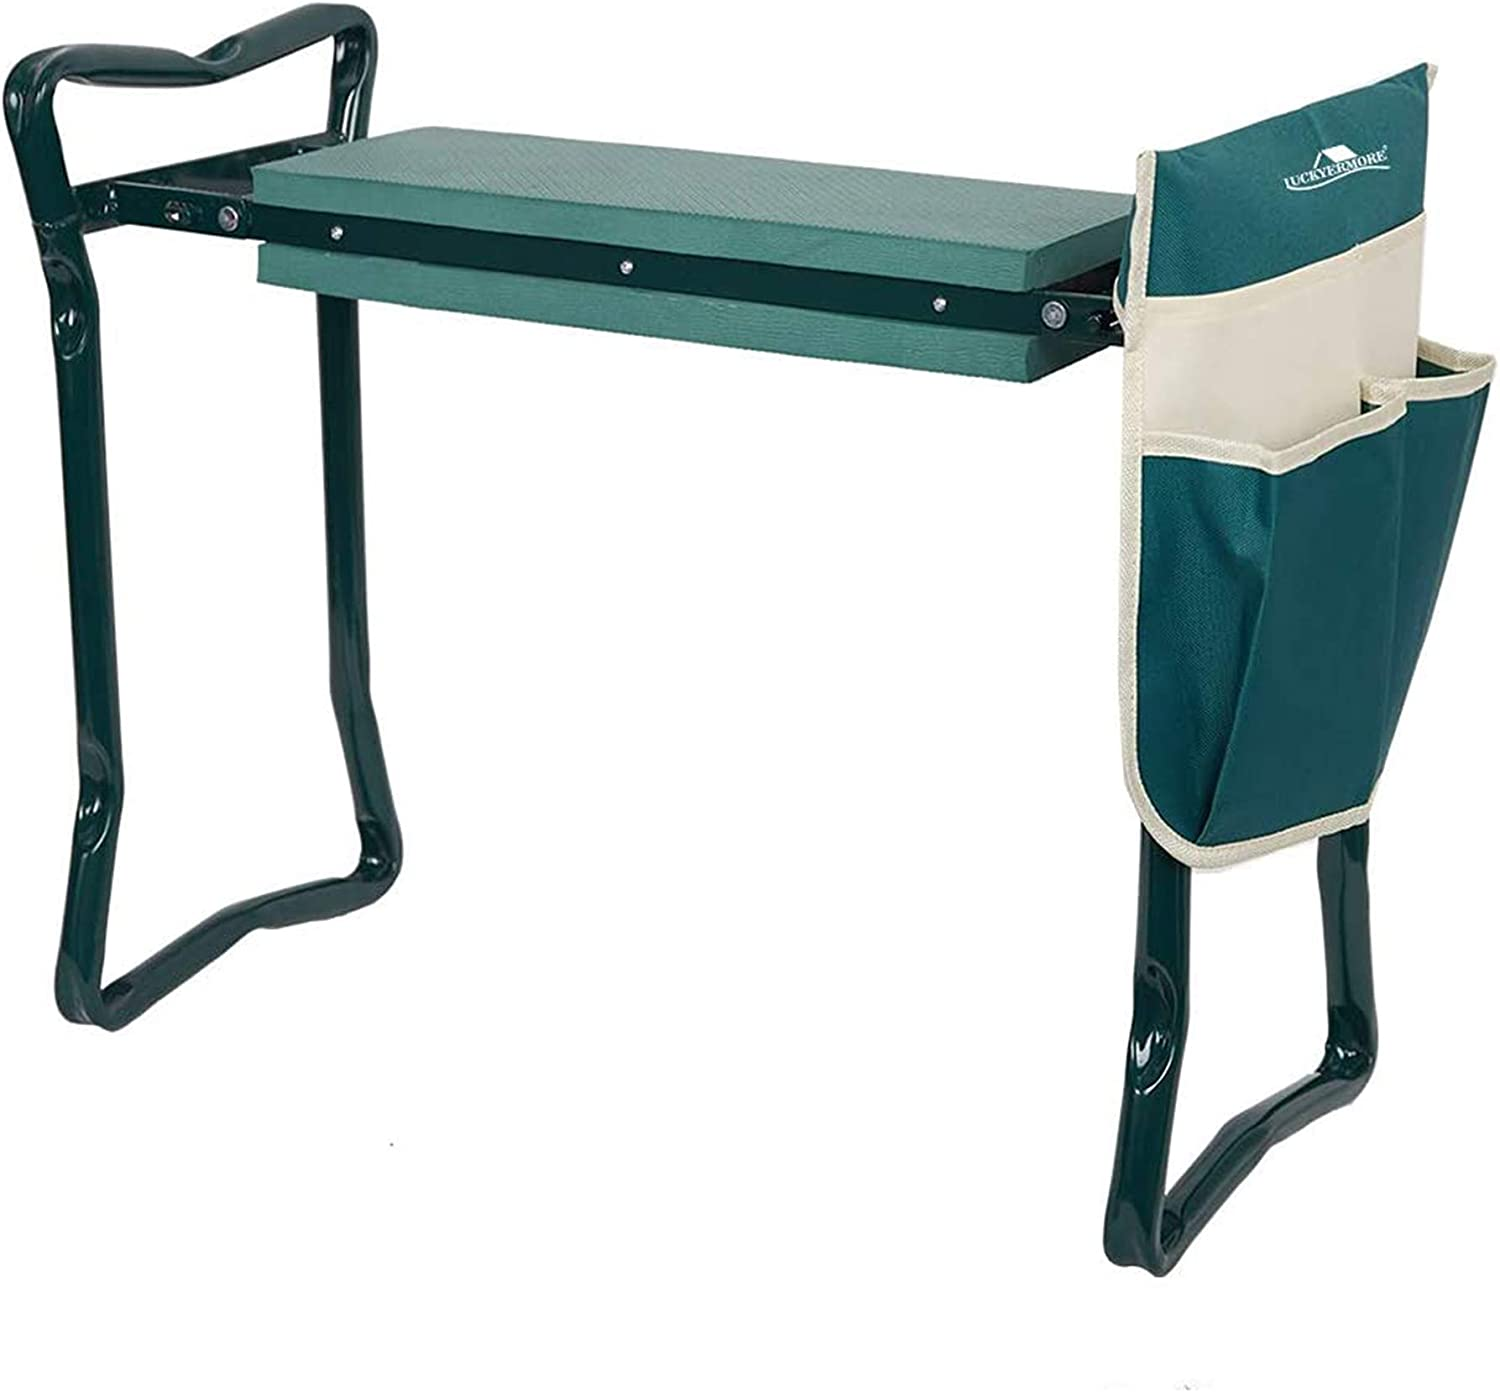 Folding Garden Kneeler and Seat Garden Bench with Tool Pouch and Soft Kneeling Pad from LUCKYERMORE